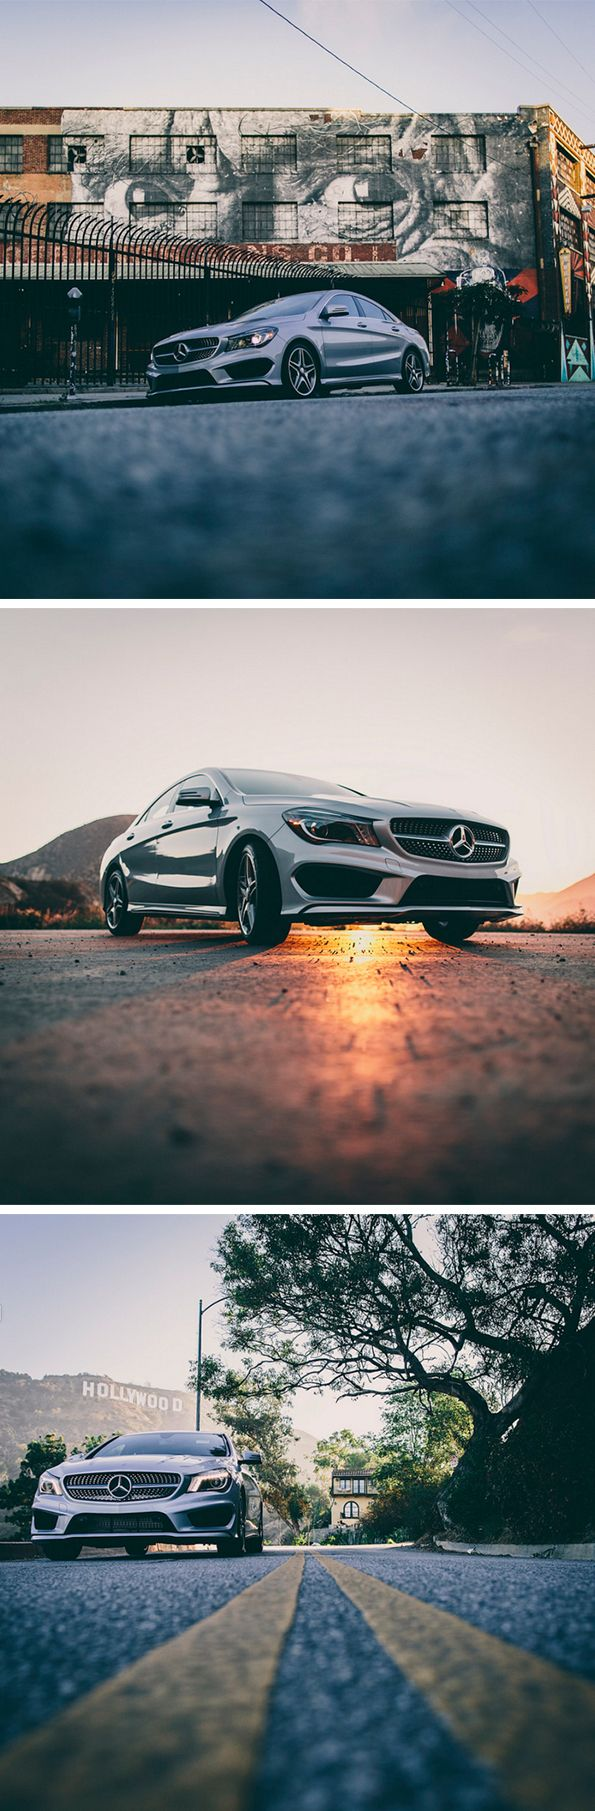 The stylistic rebel: The Mercedes-Benz CLA 250. Photos taken by Andres Tardio via #mbphotopass @mercedesbenzusa. [Mercedes-Benz CLA 250 | Combined fuel consumption 6.6–6.4 l/100km | combined CO2 emission 153–148 g/km | http://mb4.me/efficiency_statement]